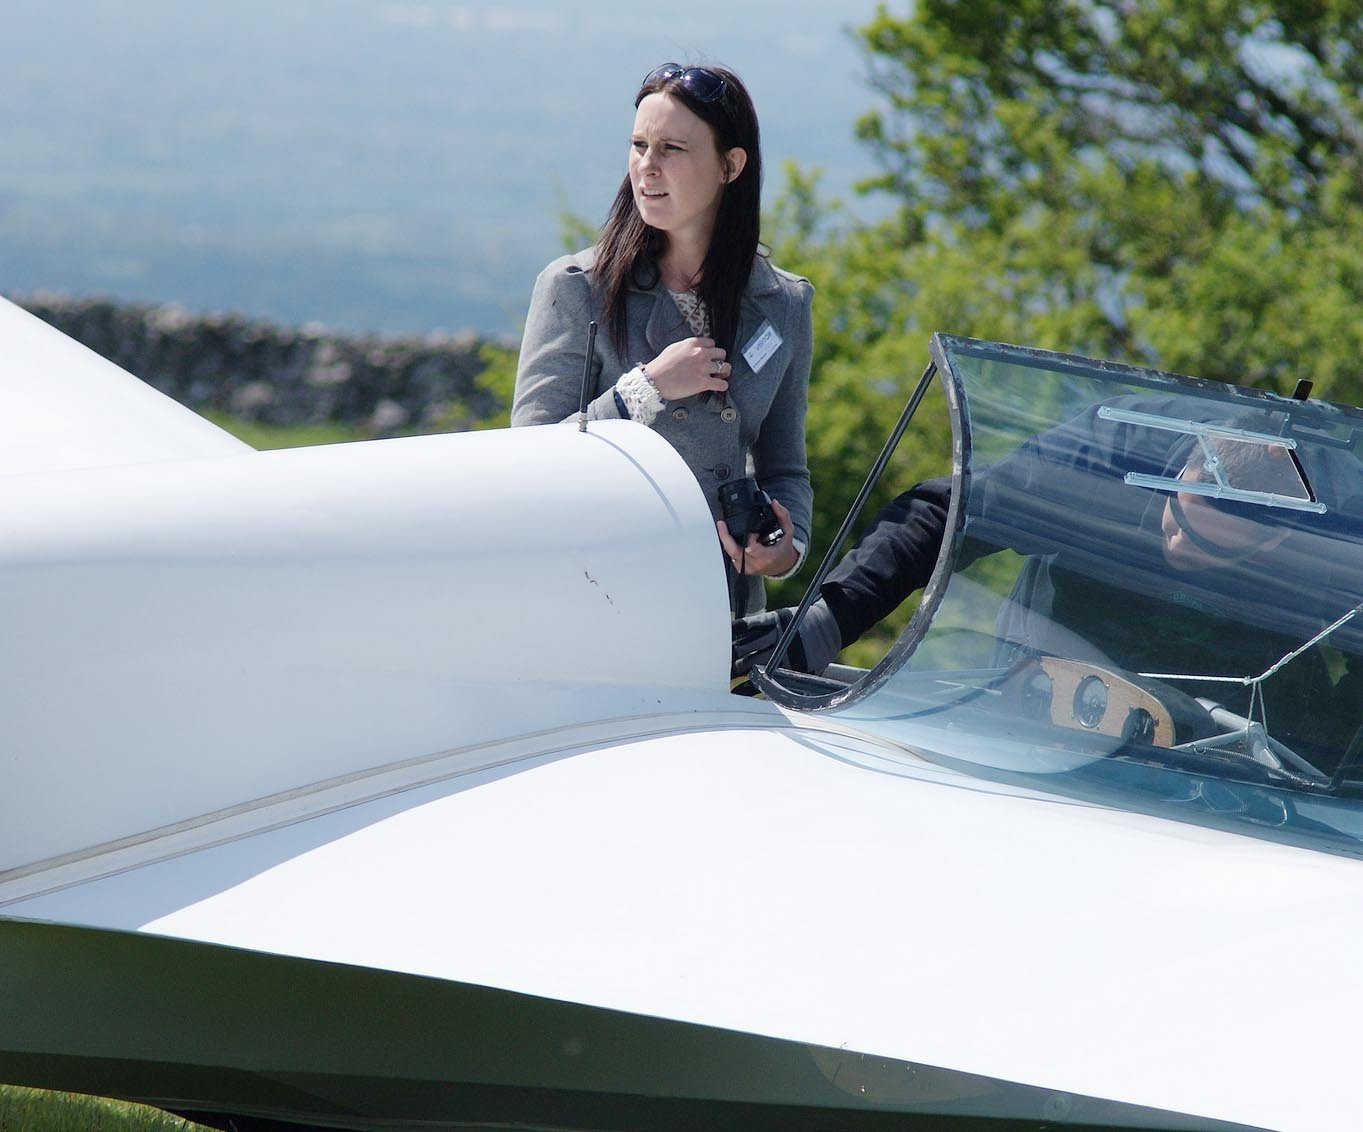 Mendip gliding trial lessons